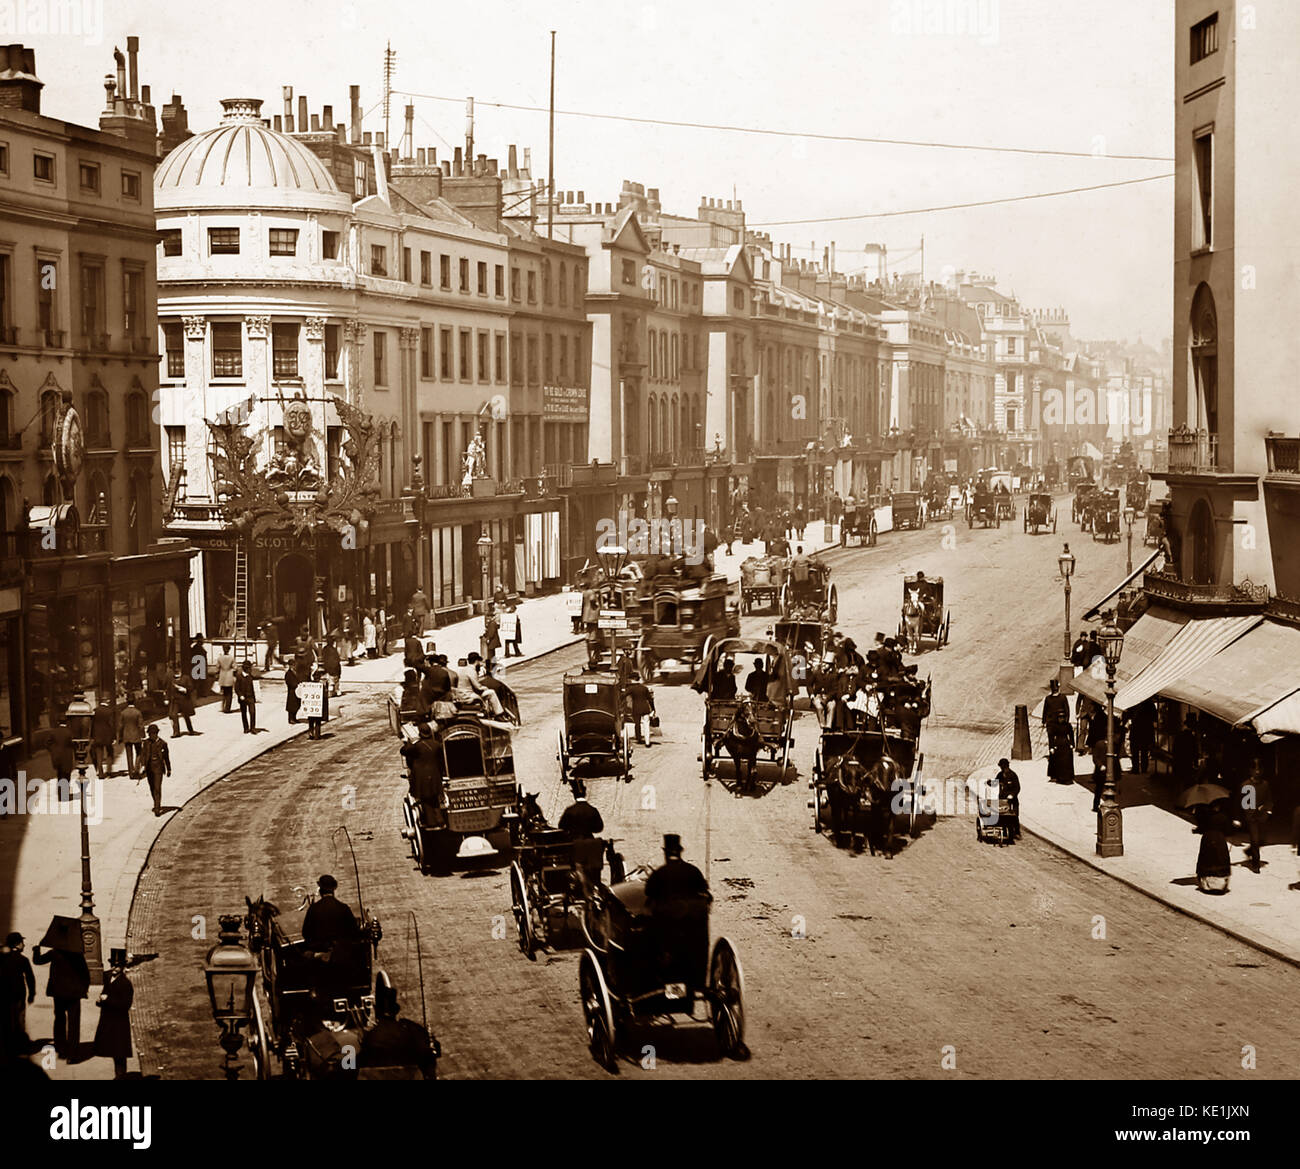 Regent Street, London, Victorian period - Stock Image